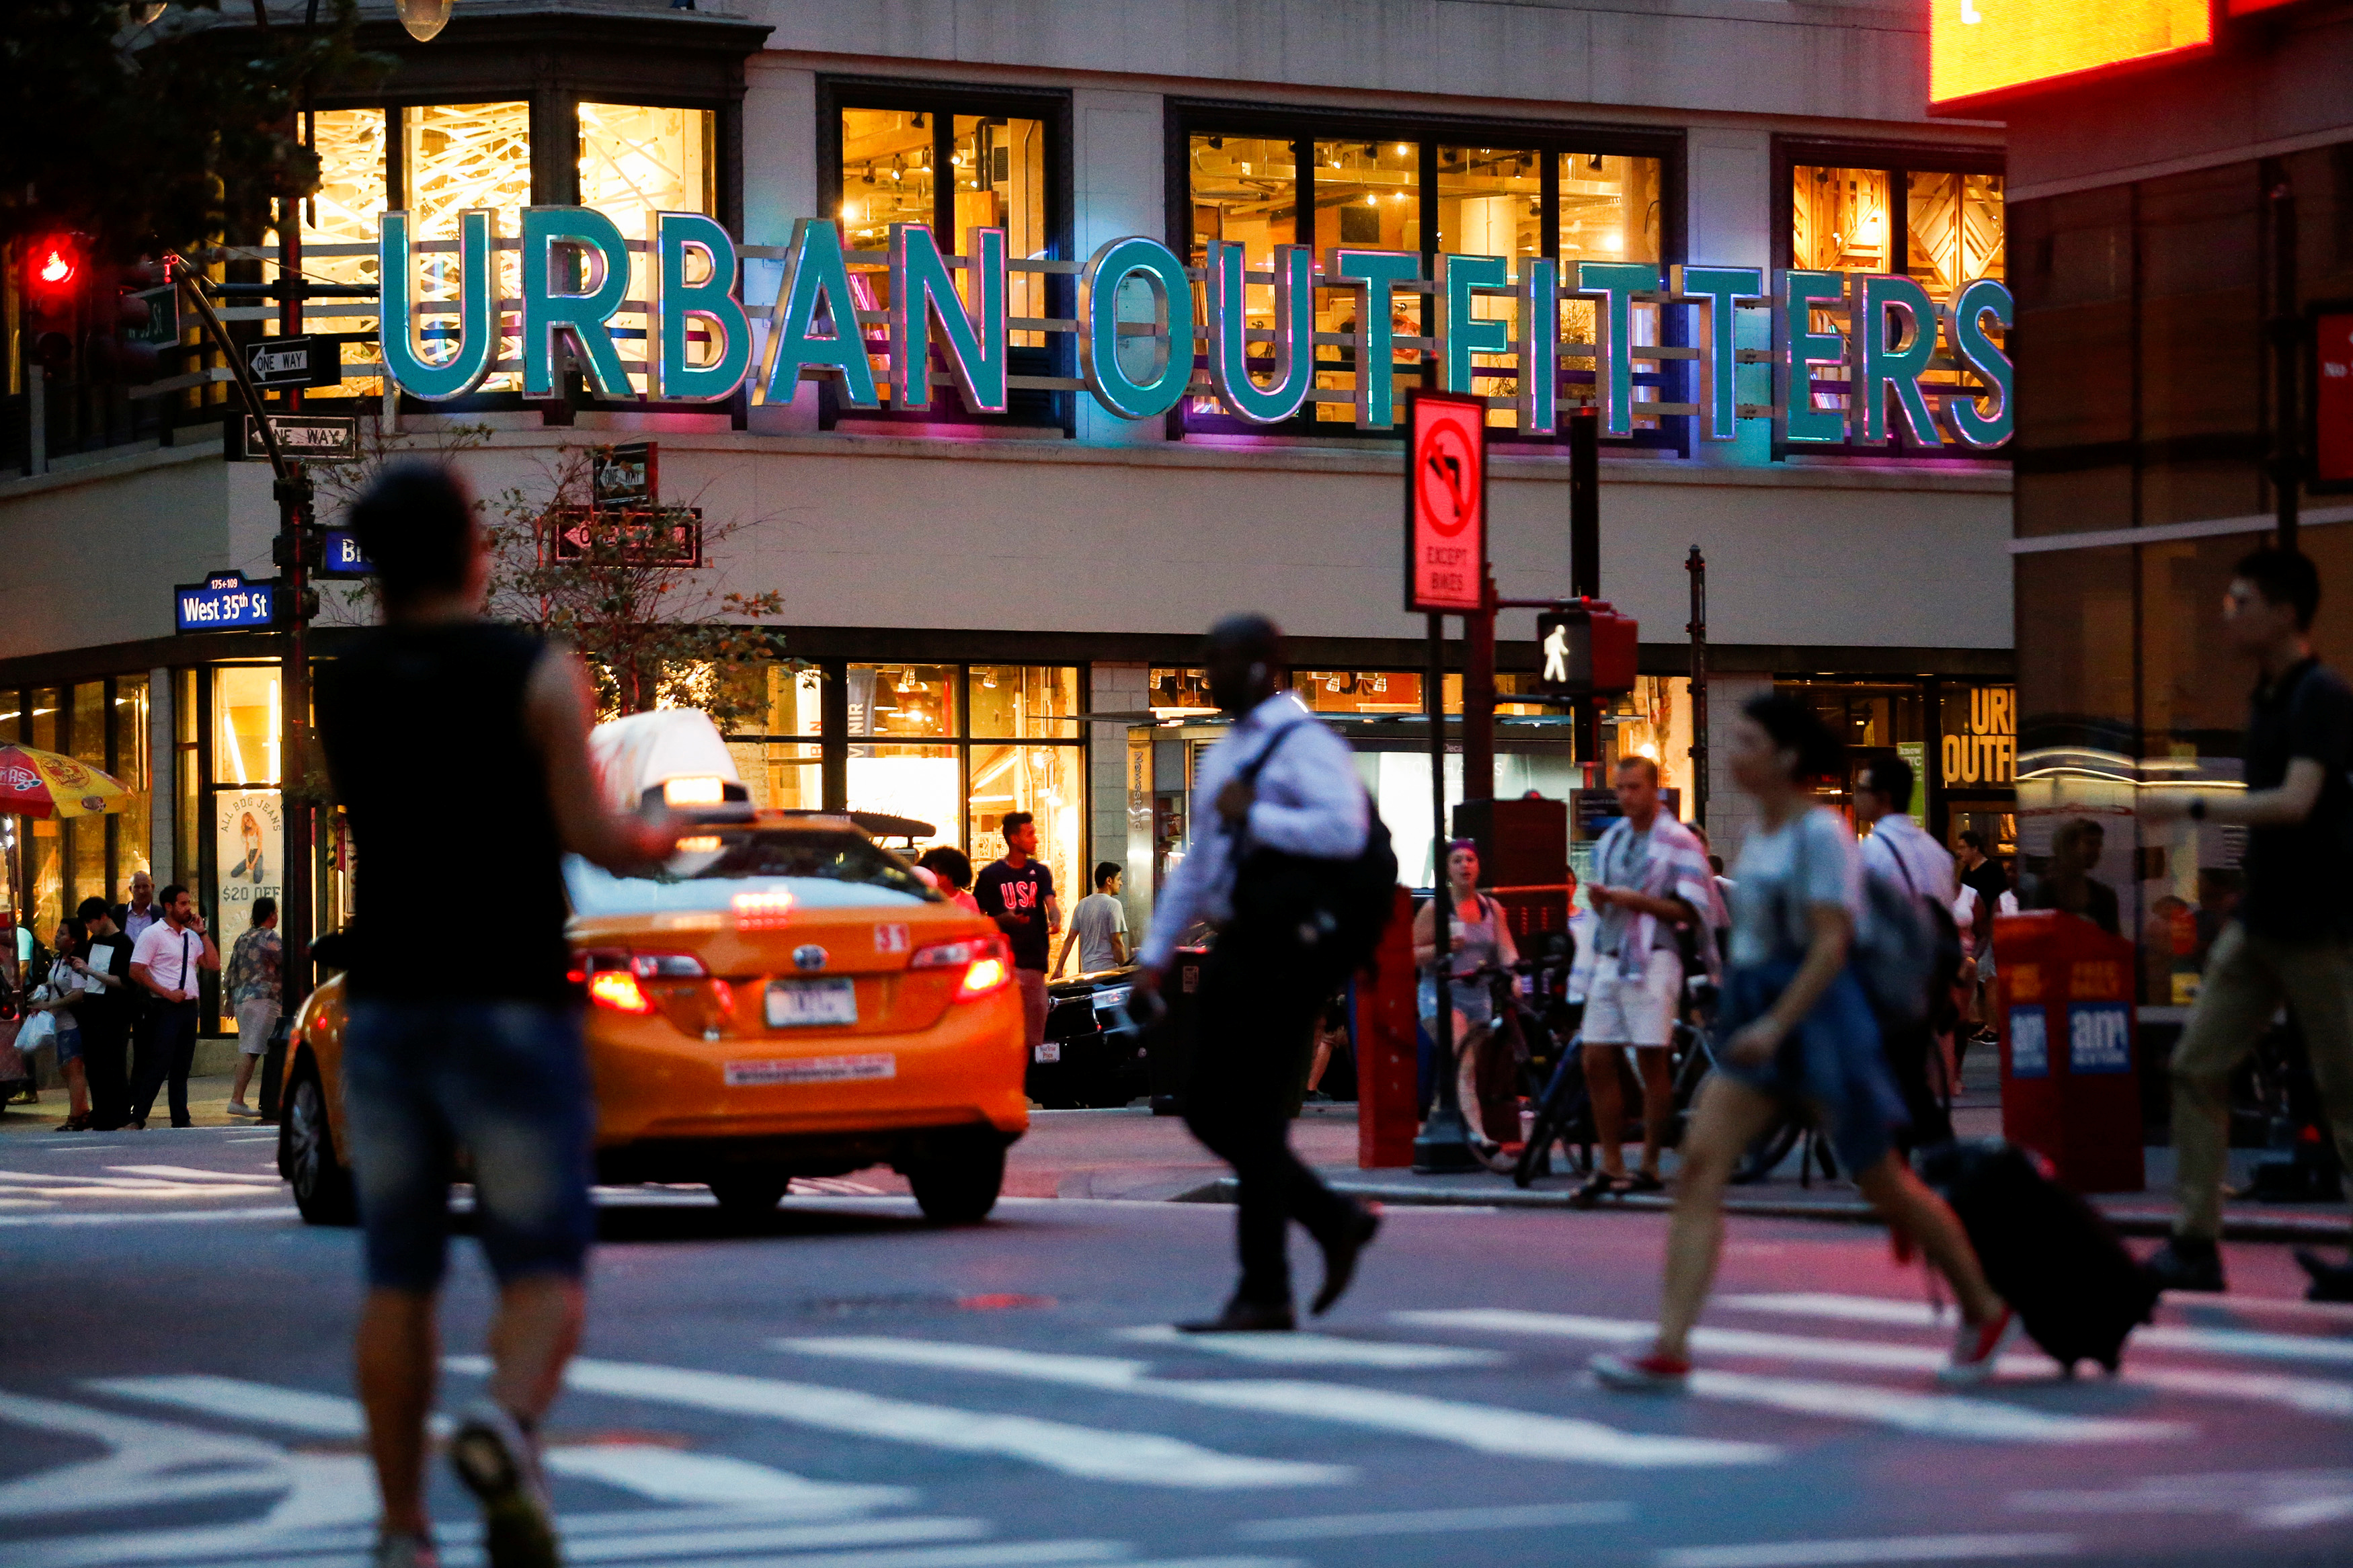 People crosses the street next to the Urban Outfitters store in Manhattan, New York, U.S., August 15, 2016.